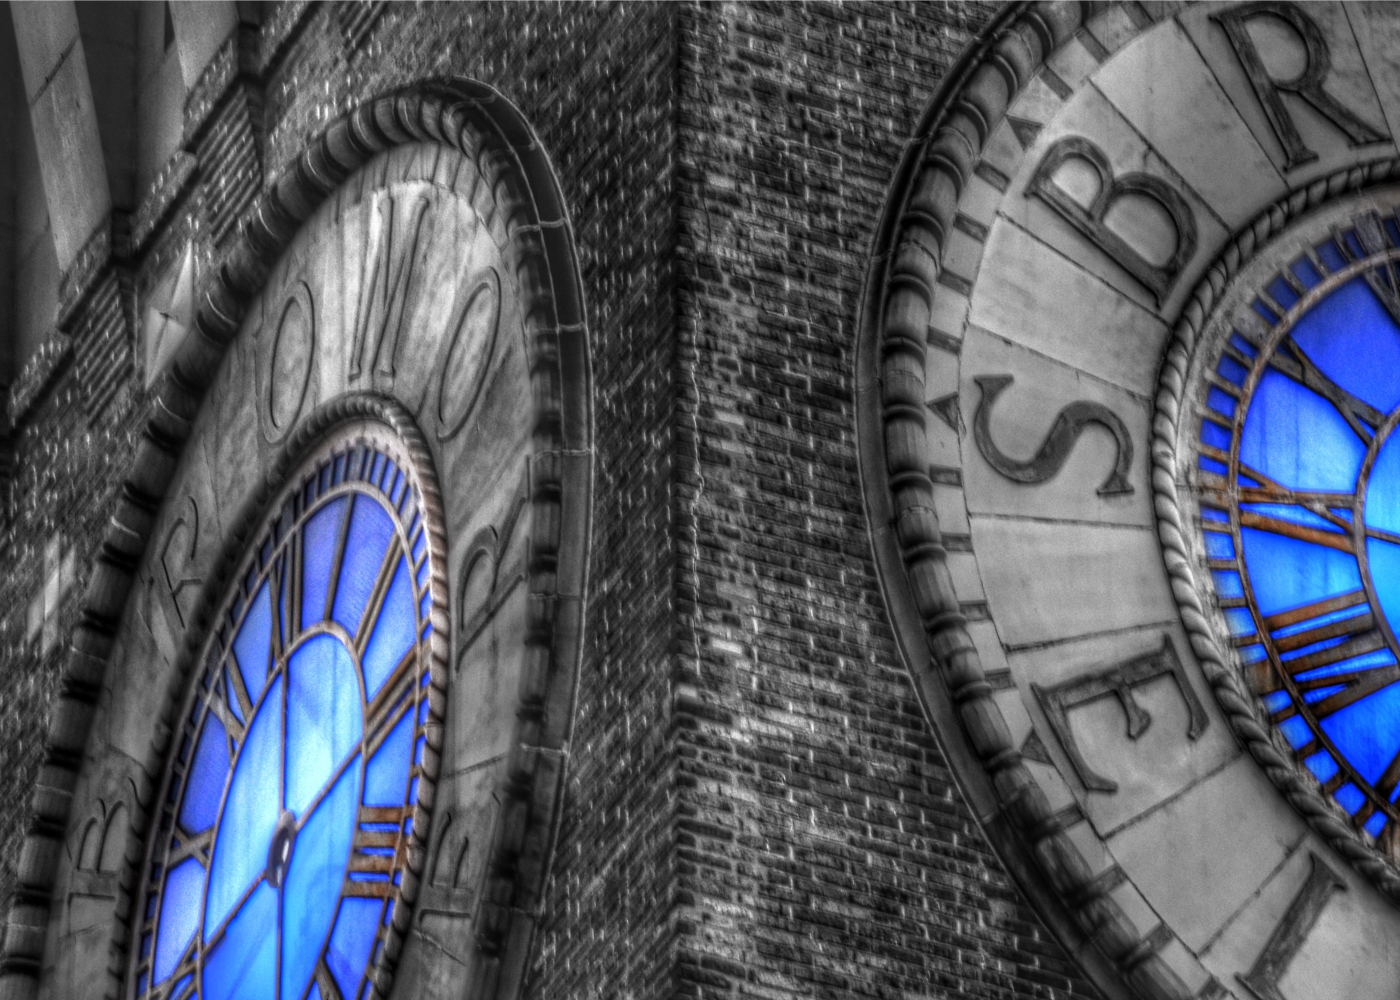 Bromo Seltzer Tower clock face by Marianna Mills